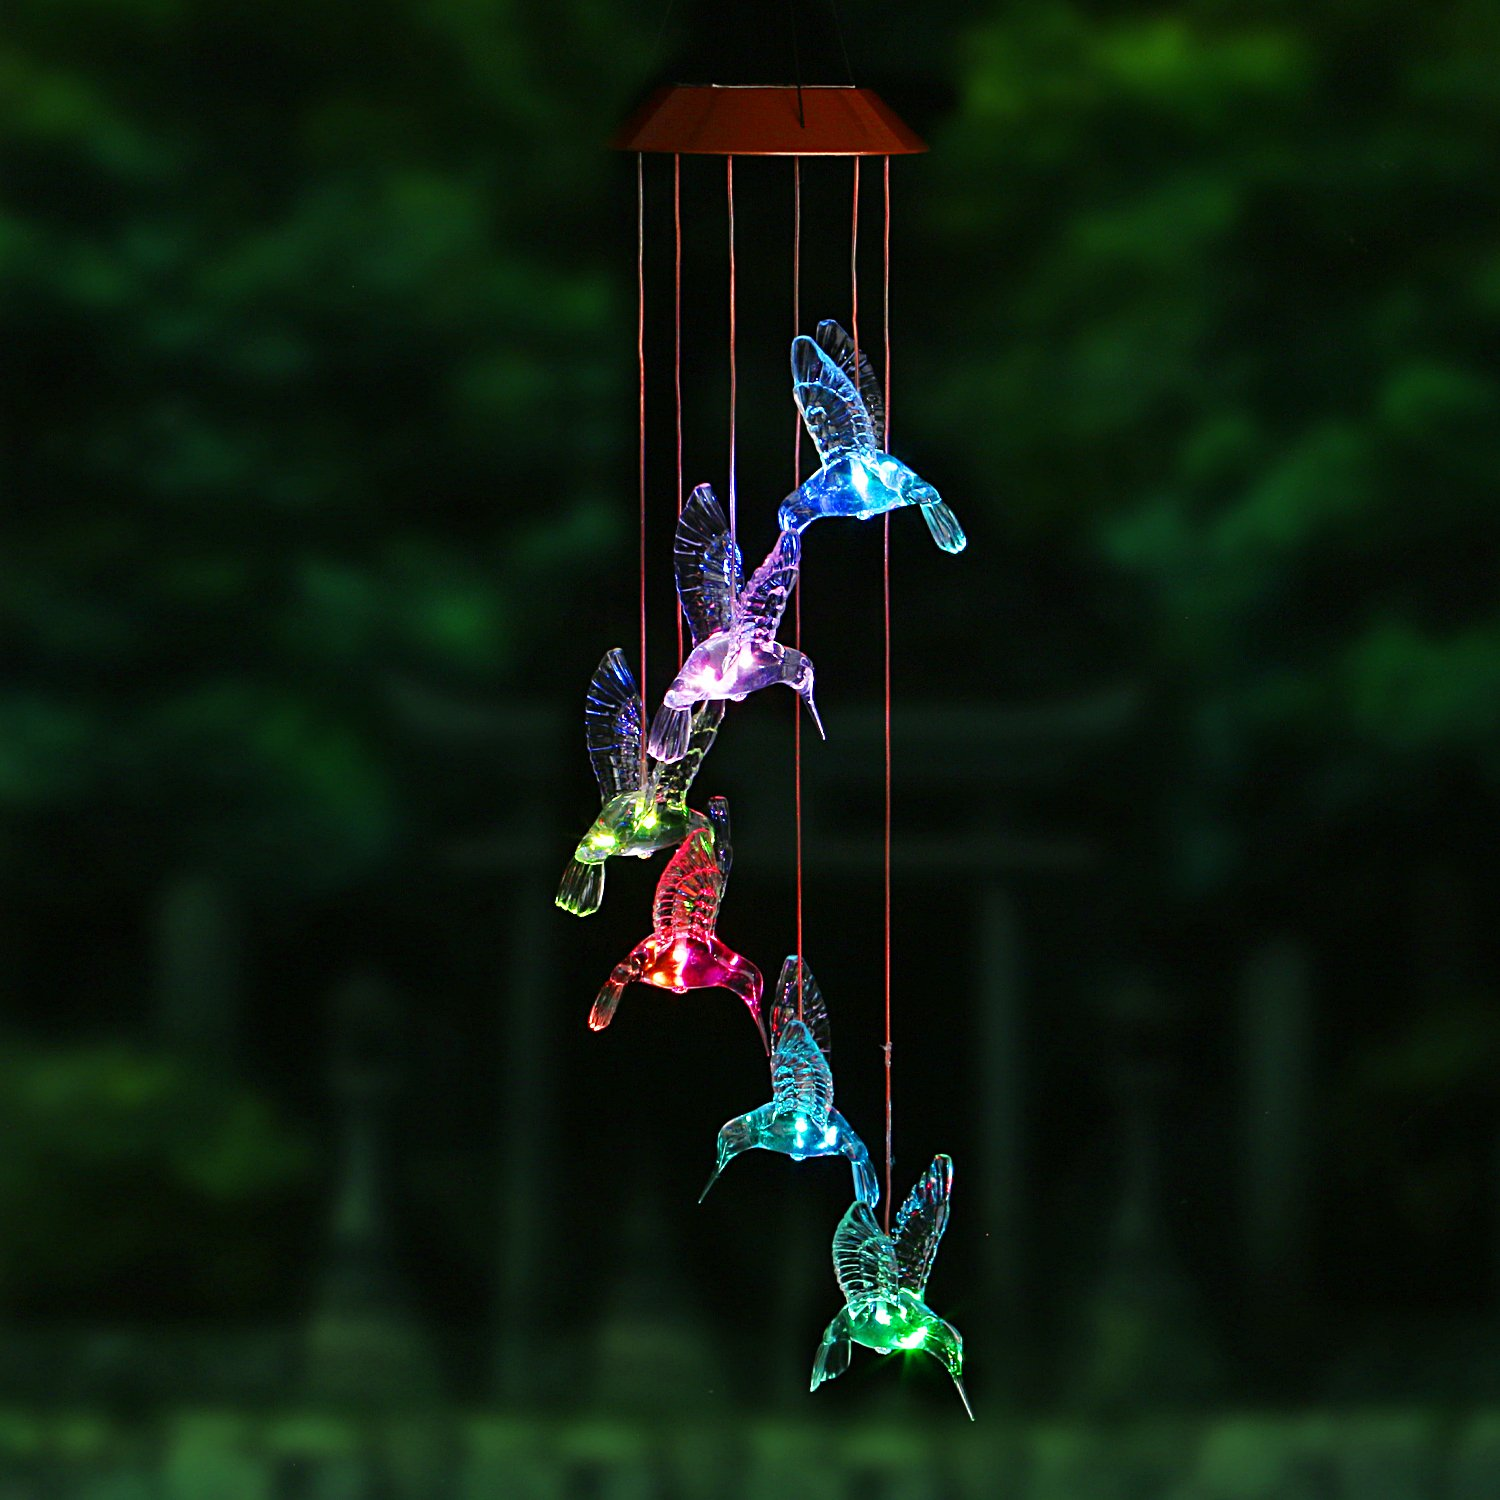 ZONYEO Changing Color Hummingbird Wind Chime, Spiral Spinner Windchime Portable Outdoor Decorative Romantic Windbell Light for Patio, Deck, Yard, Garden, Home, Pathway